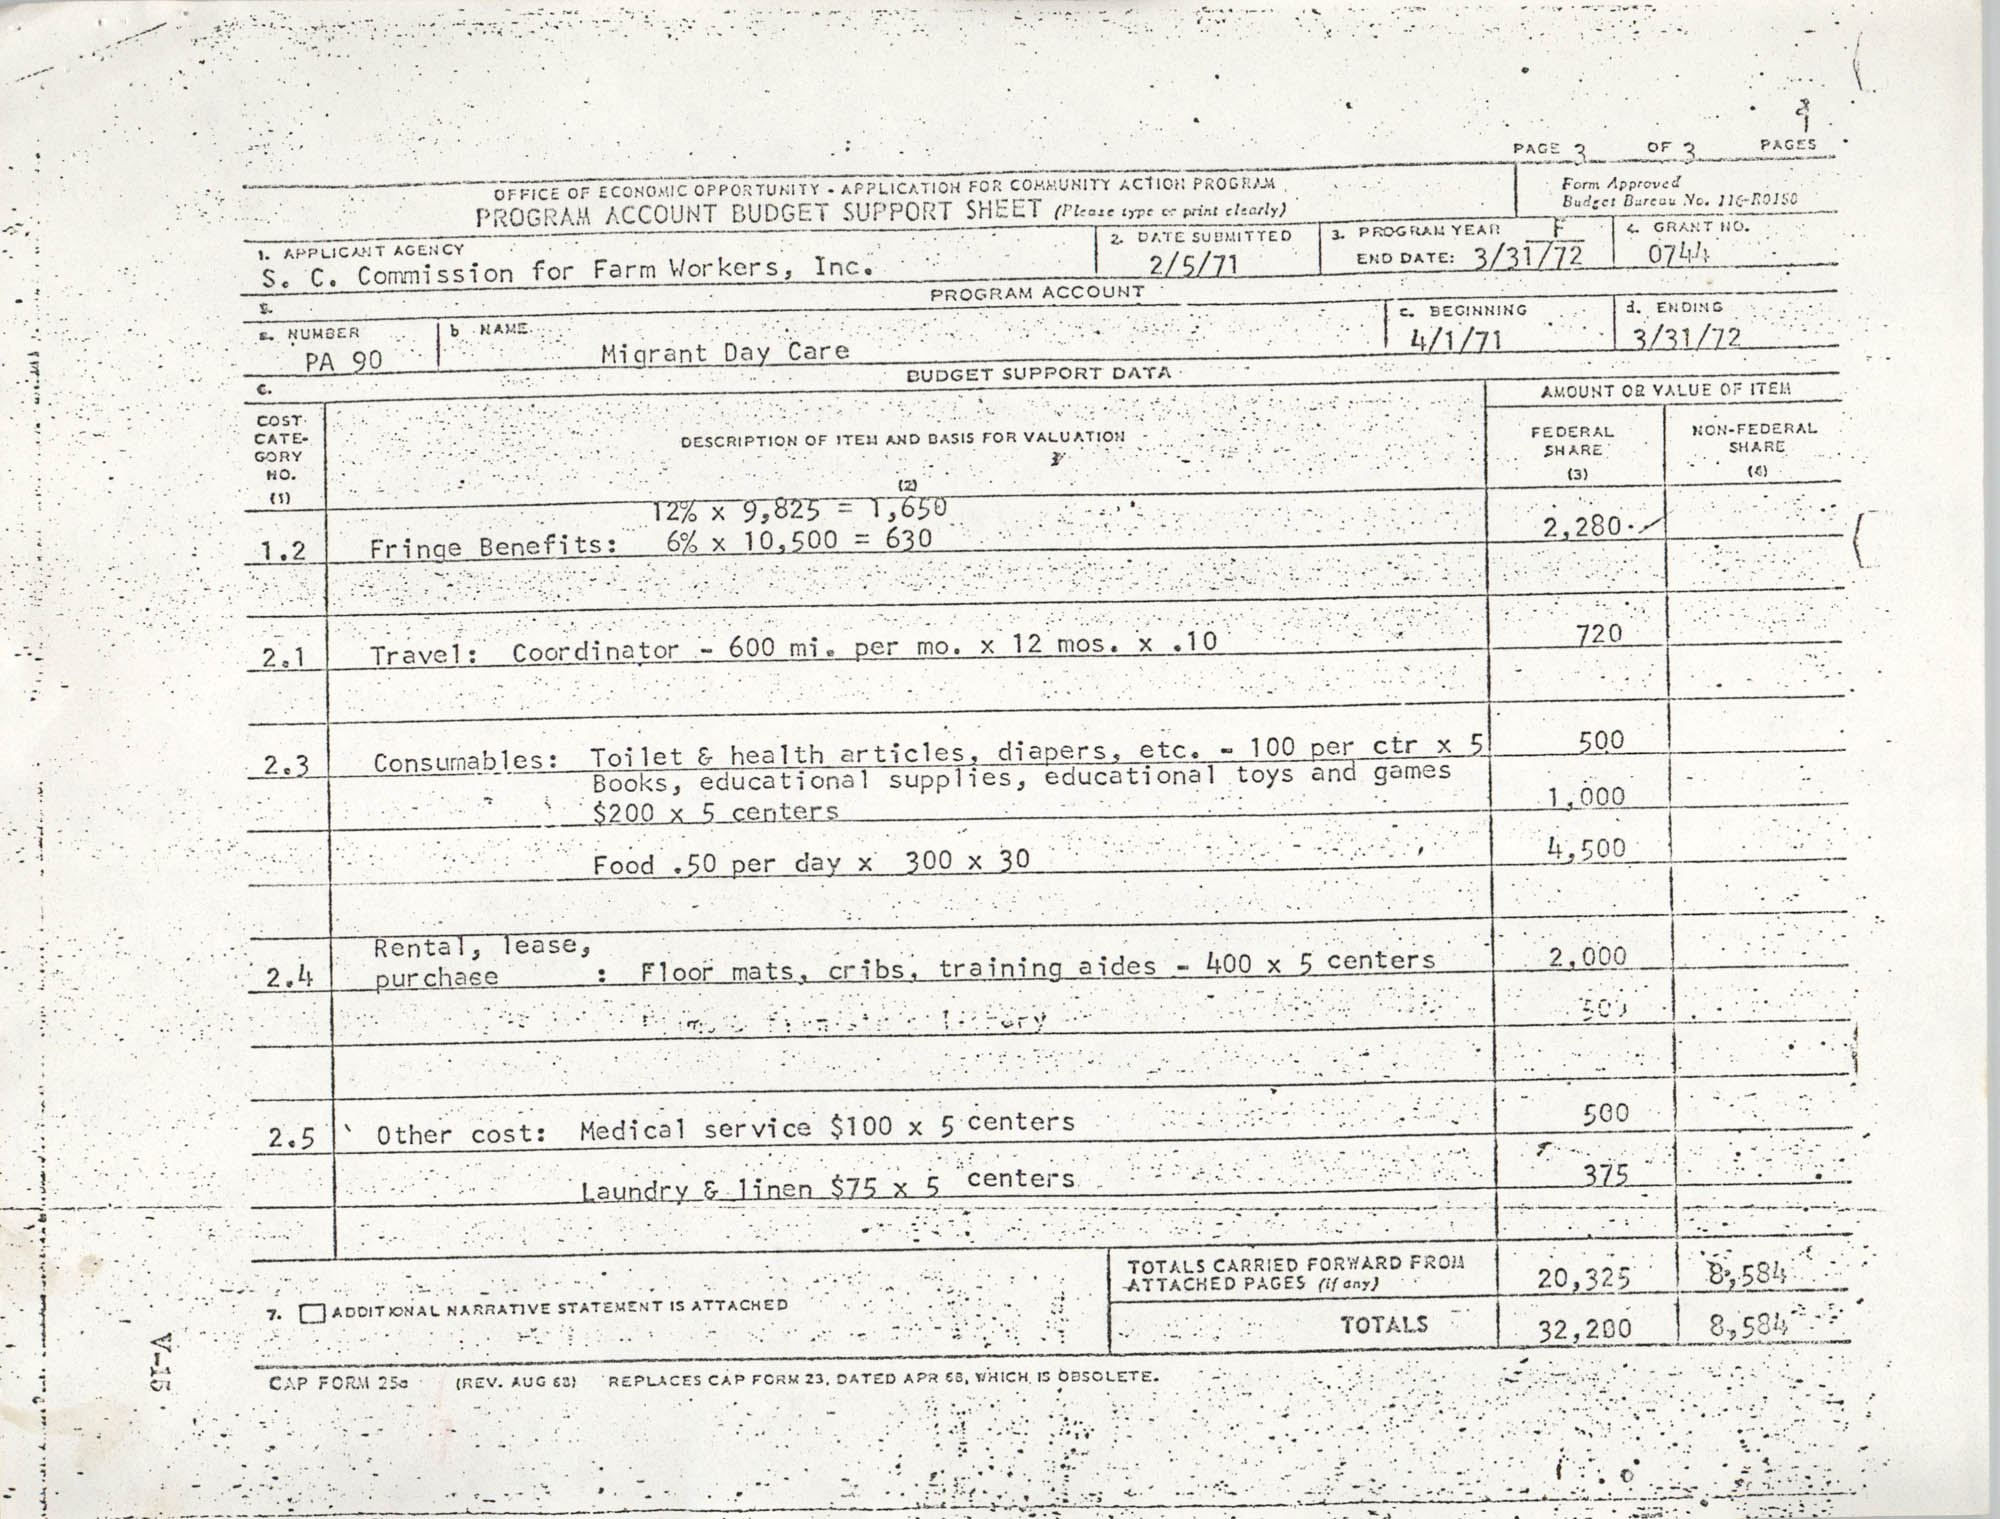 Migrant Day Care, Program Account Budget Forms, Page 3